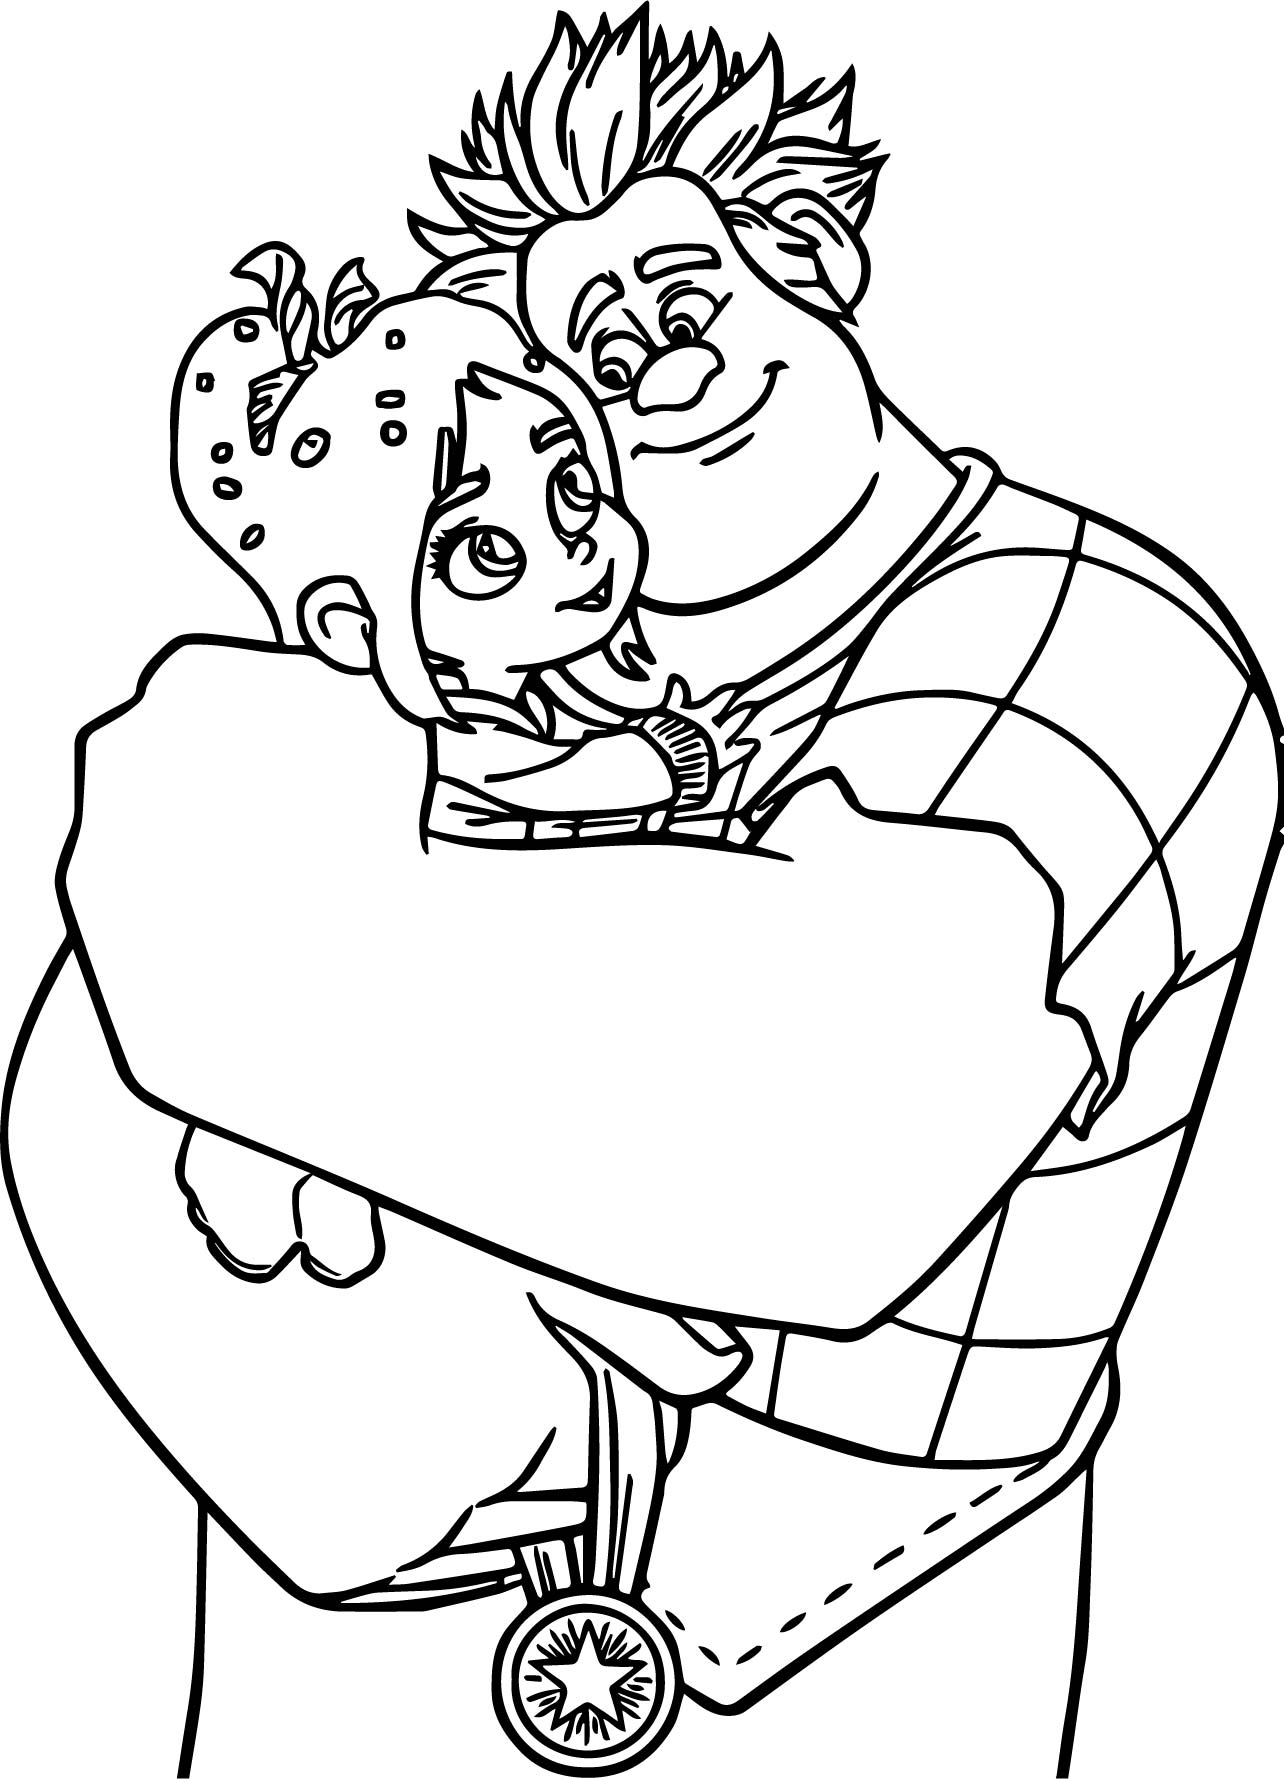 Wreck It Ralph Adventures Hug Coloring Page